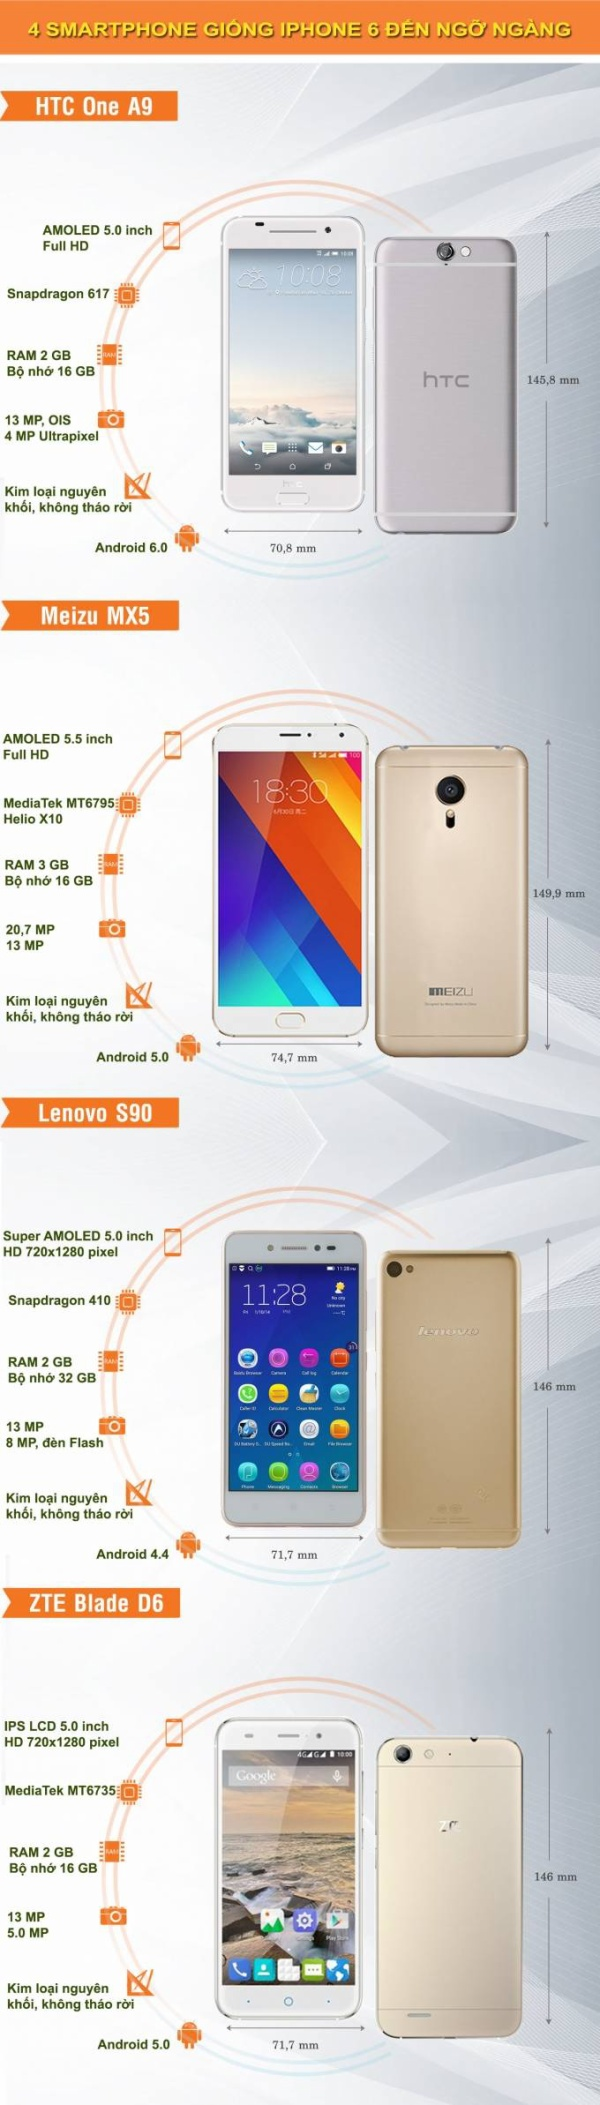 infographic-nhung-chiec-smartphone-giong-iphone-6-den-ngo-ngang